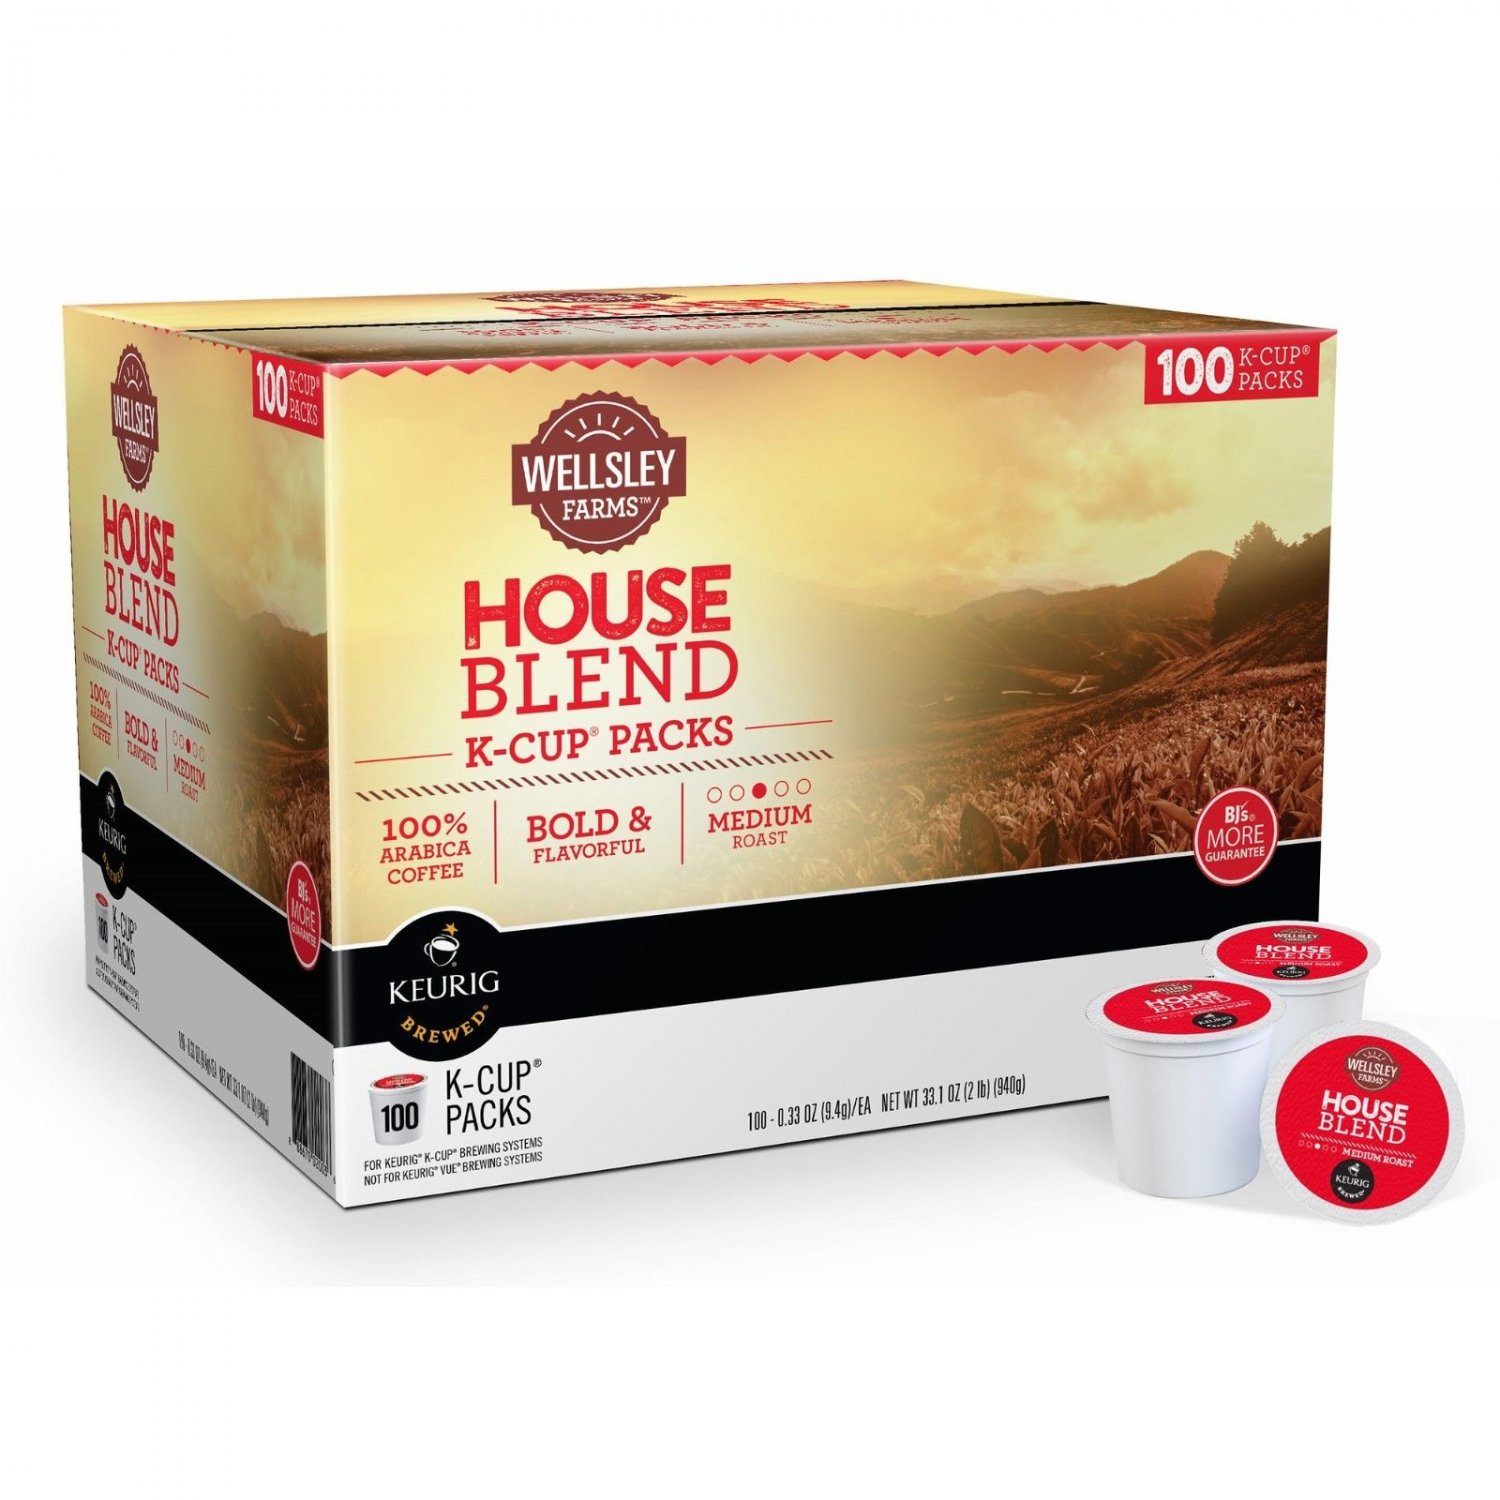 Wellsley Farms House Blend K-Cup Pods, 100 ct. NEW